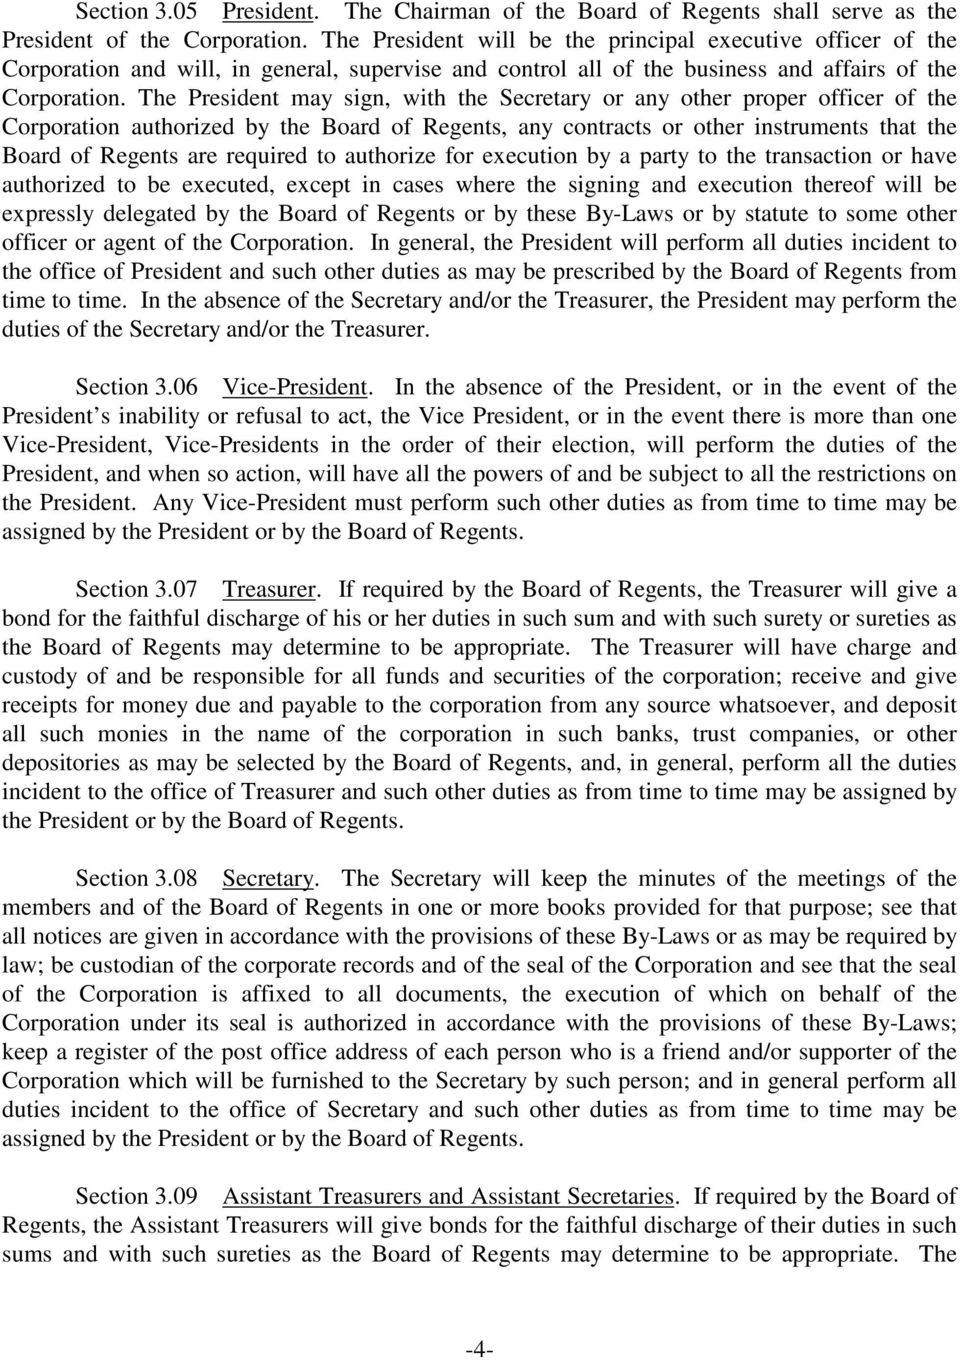 The President may sign, with the Secretary or any other proper officer of the Corporation authorized by the Board of Regents, any contracts or other instruments that the Board of Regents are required